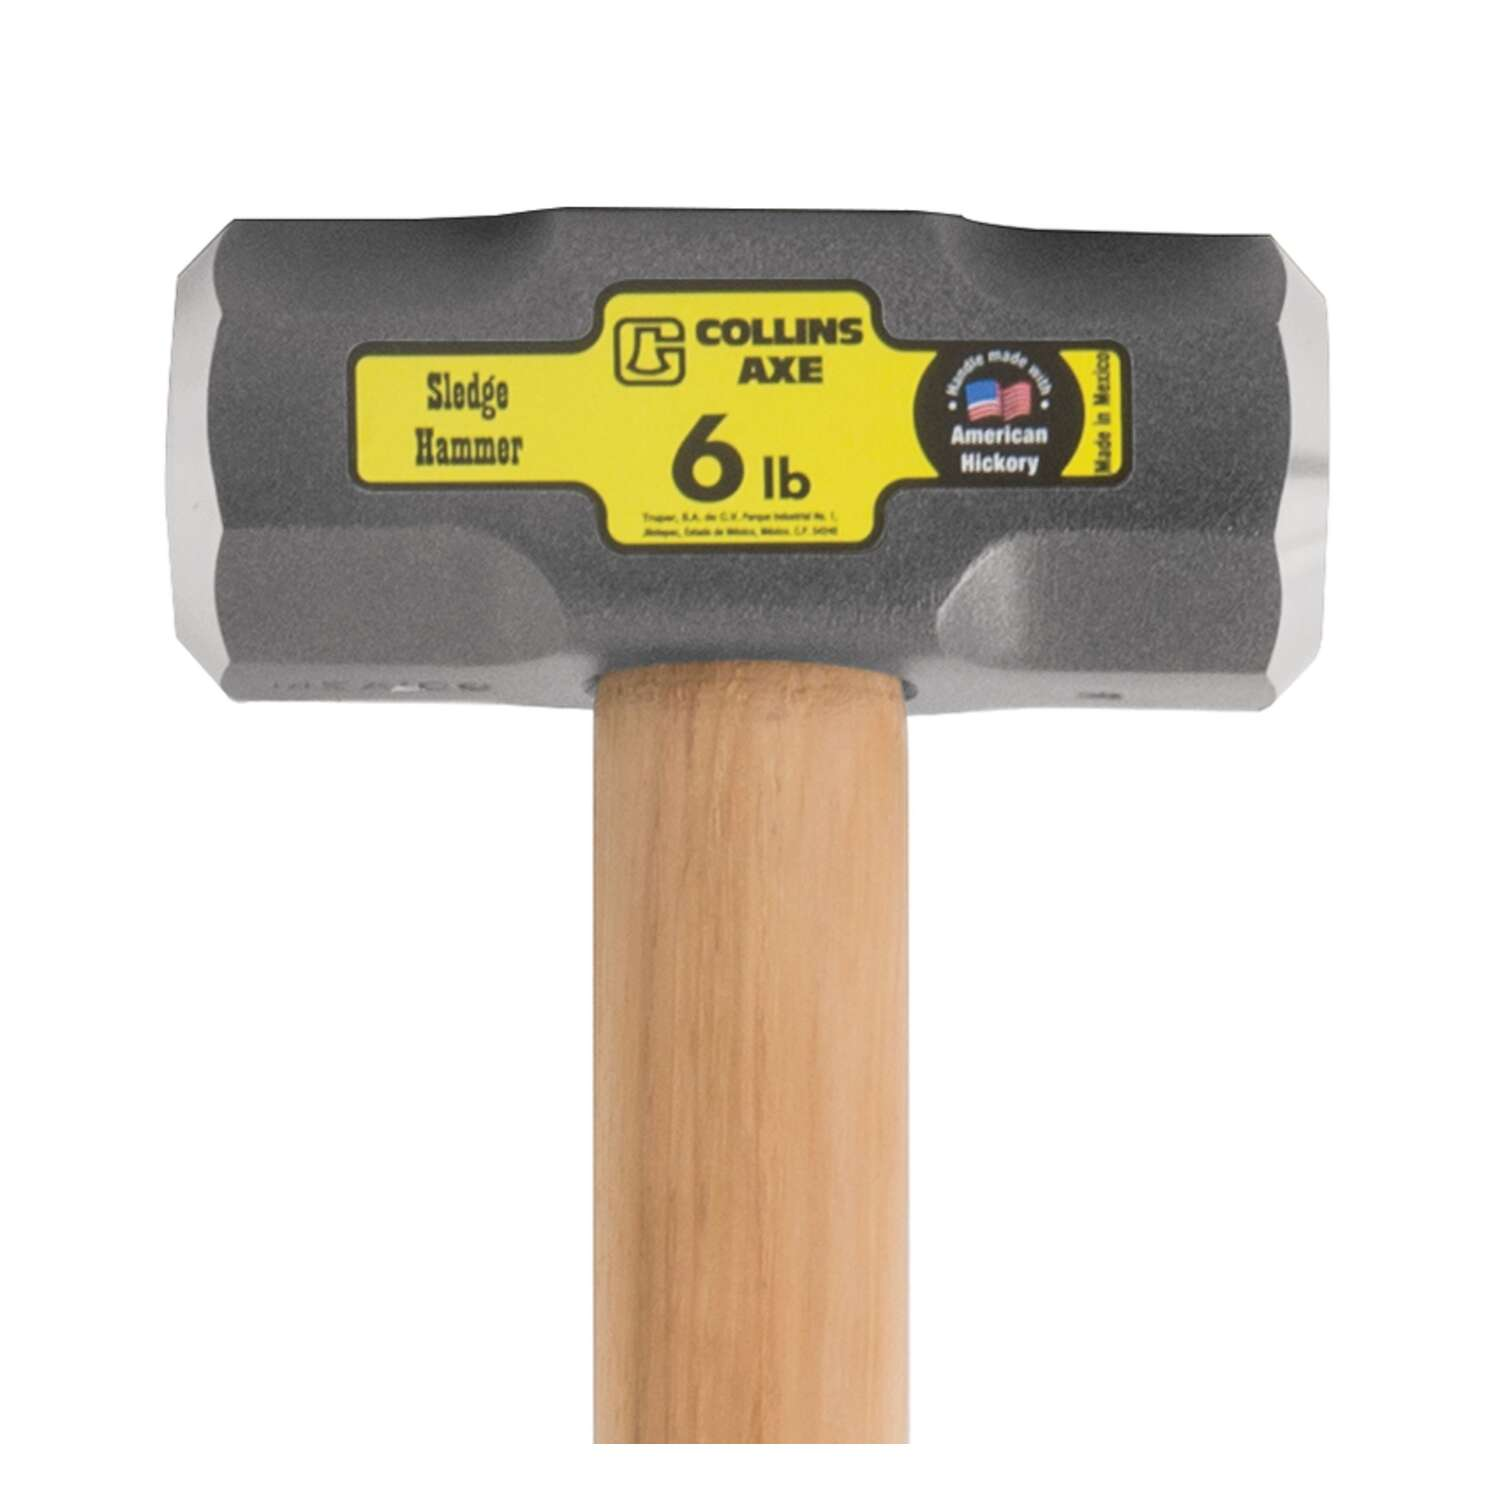 Collins  6 lb. Forged High Carbon Steel Head Sledge Hammer  36 in. L x 2.1 in. Dia.